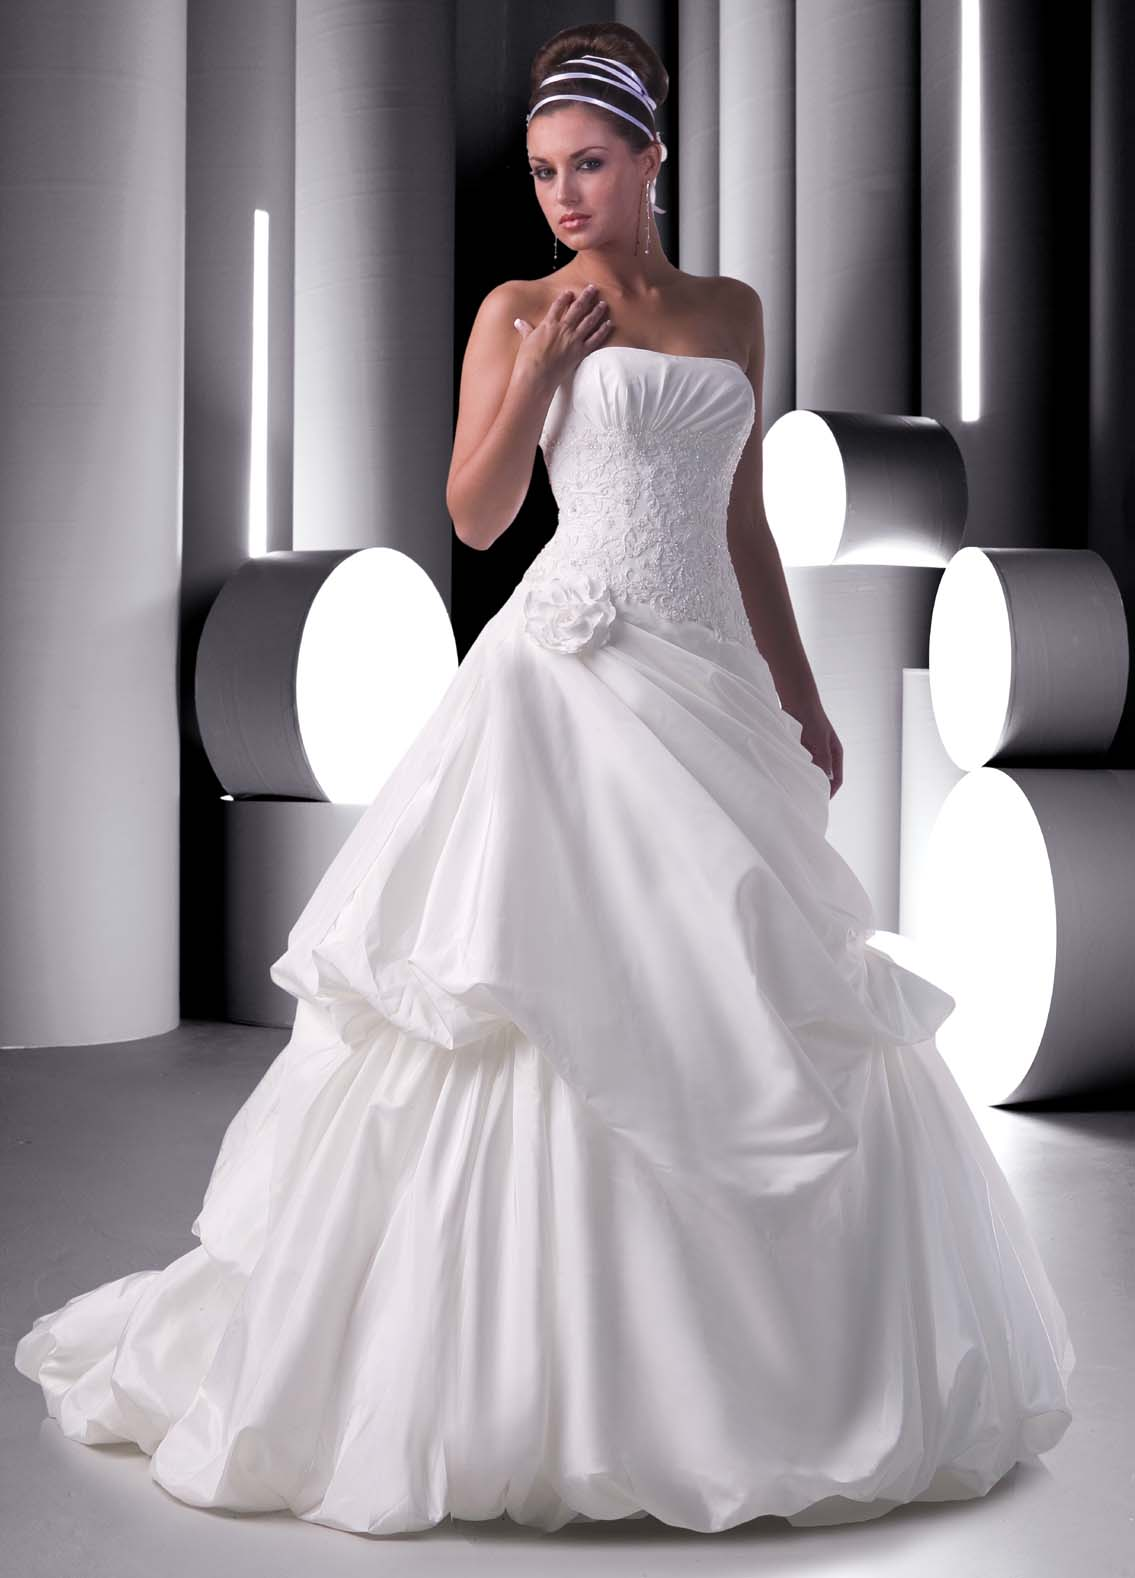 Bride Gowns Affordable Bridal Dresses And Miniature Bride Dresses